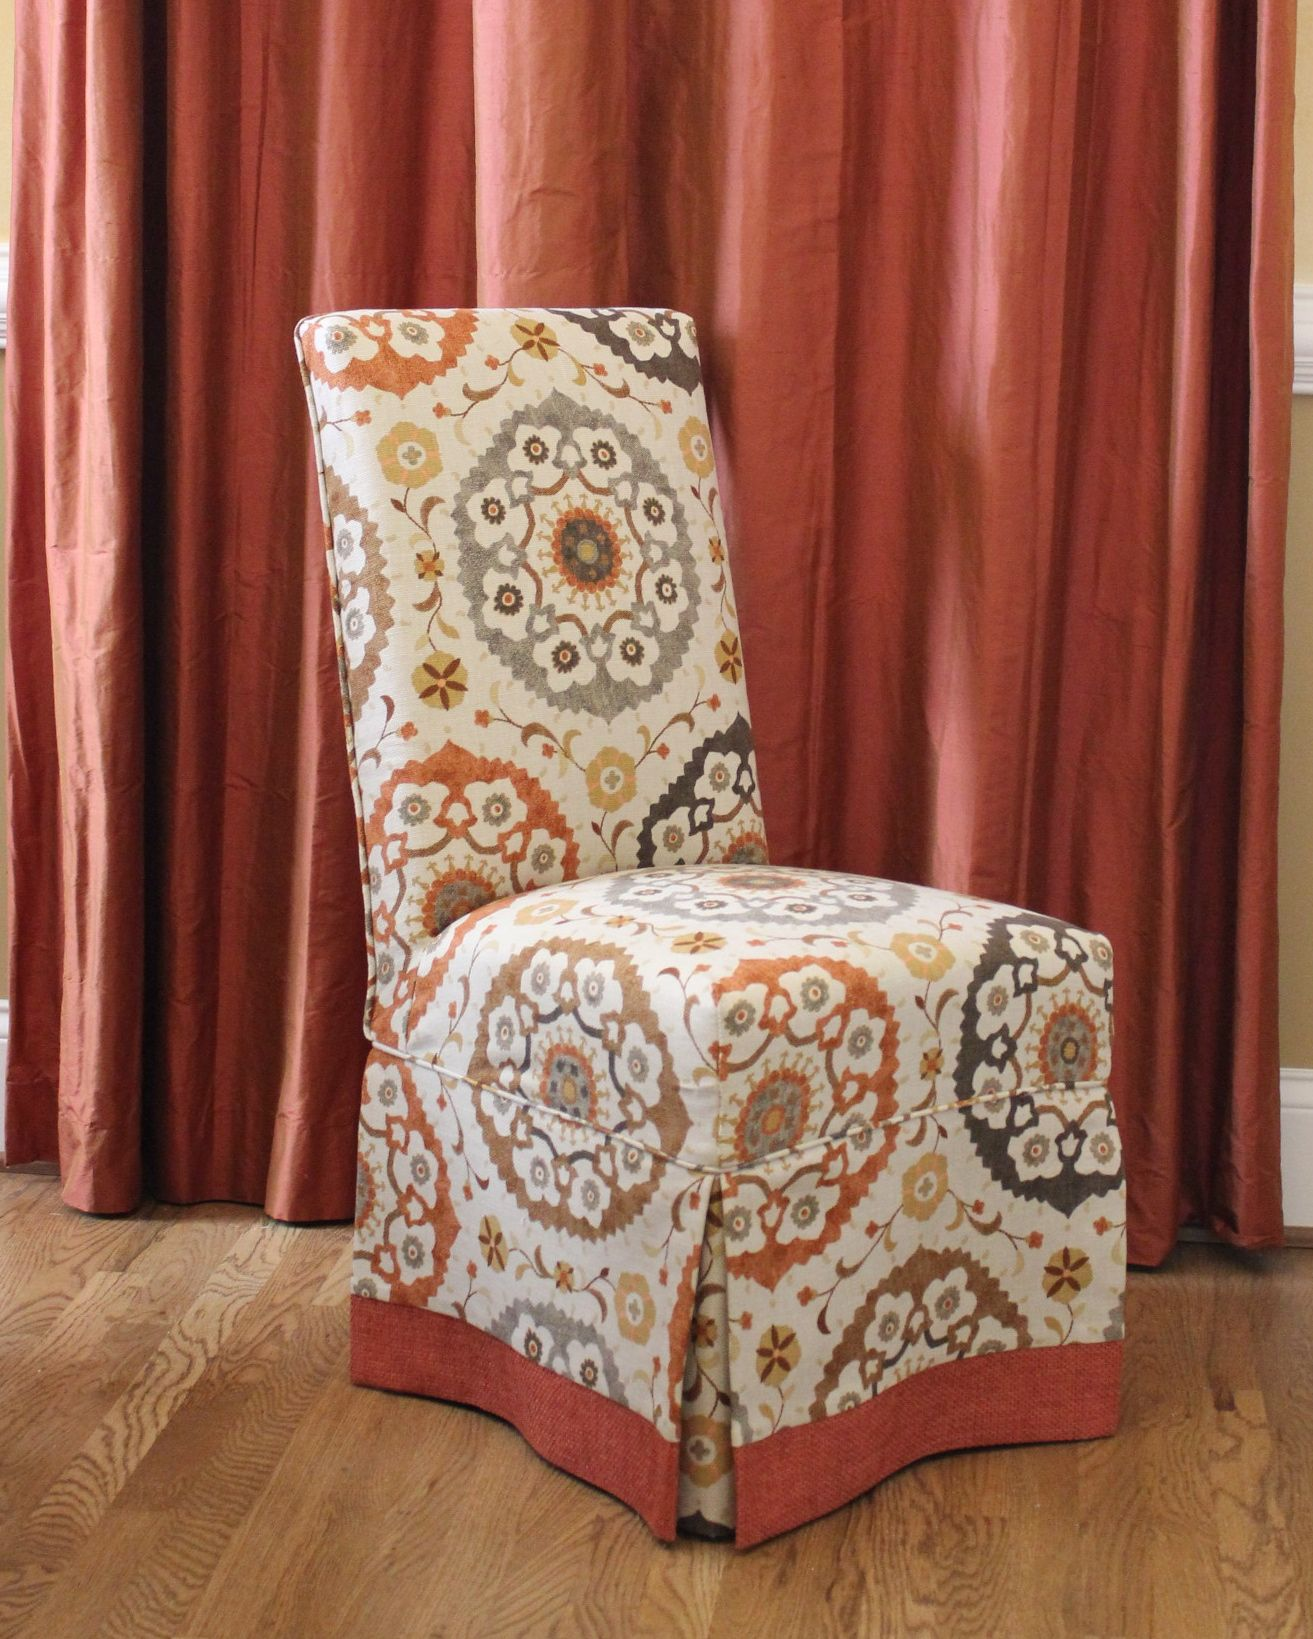 Parson Chair Slipcovers With Contrast Banding, Design By Elisha Howell,  Fabrication By Camille Moore Window Treatments